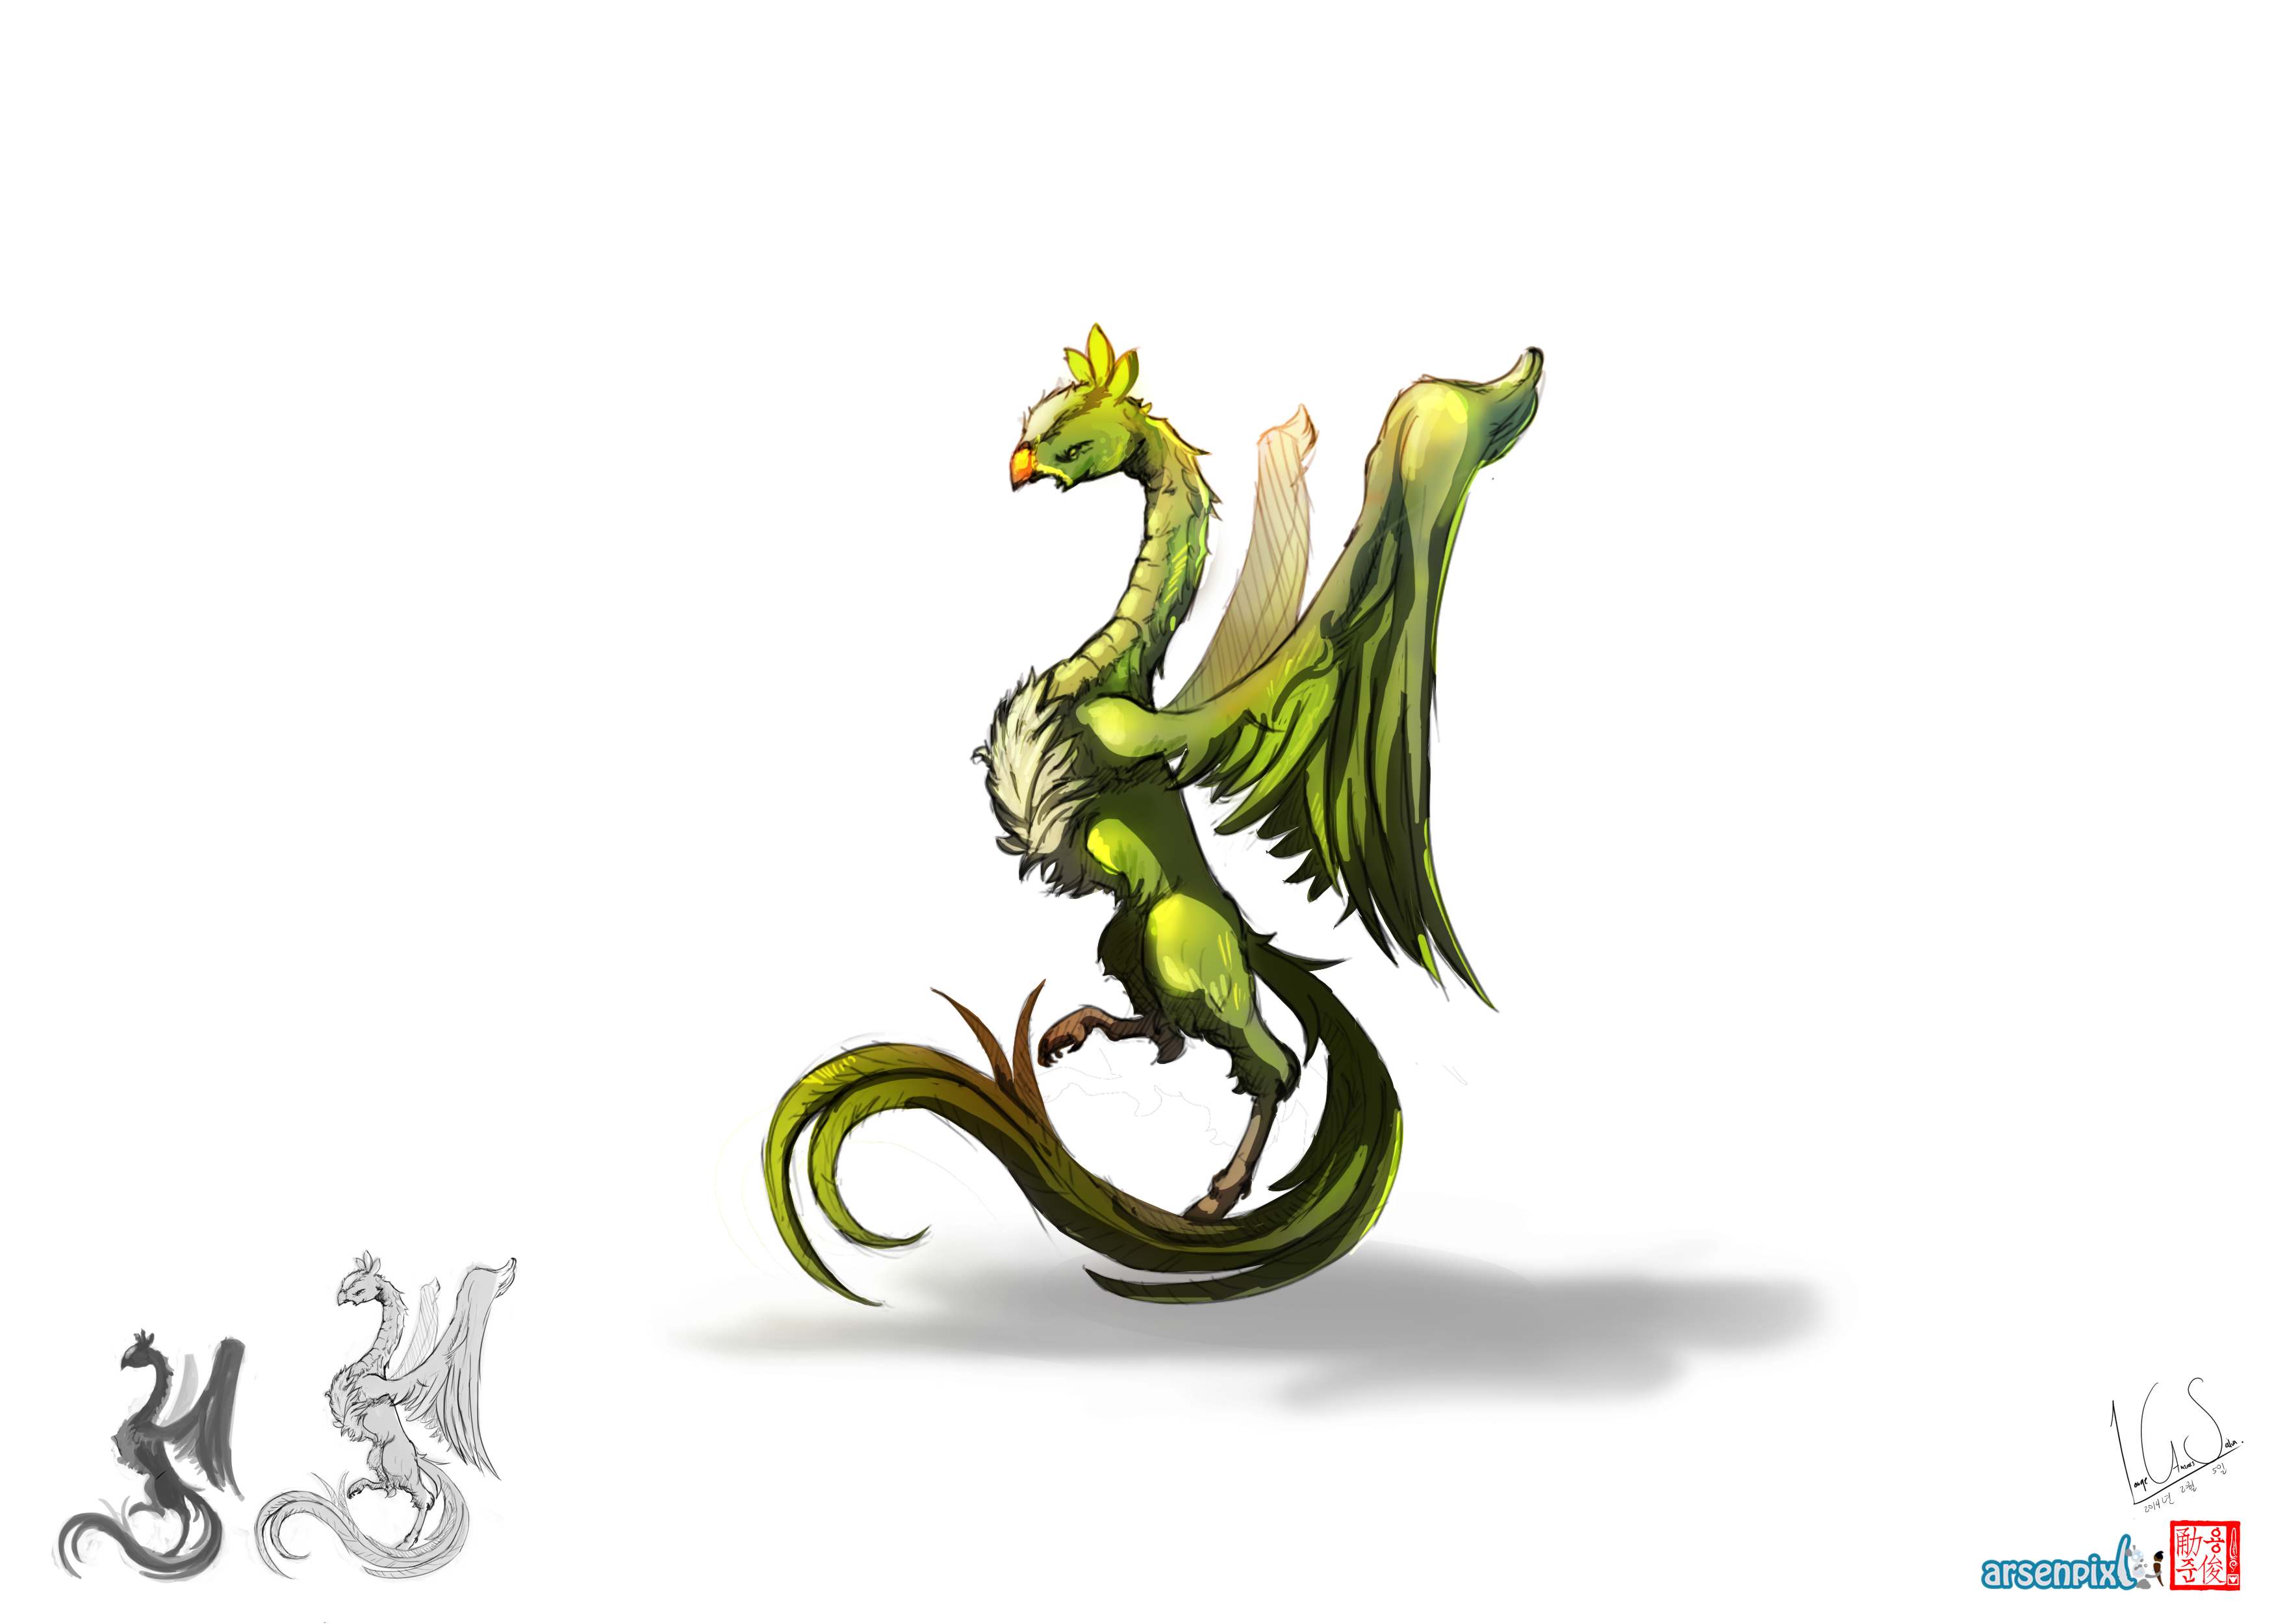 Concept Art: Dragon types - Colouring sketches  - image 1 - student project